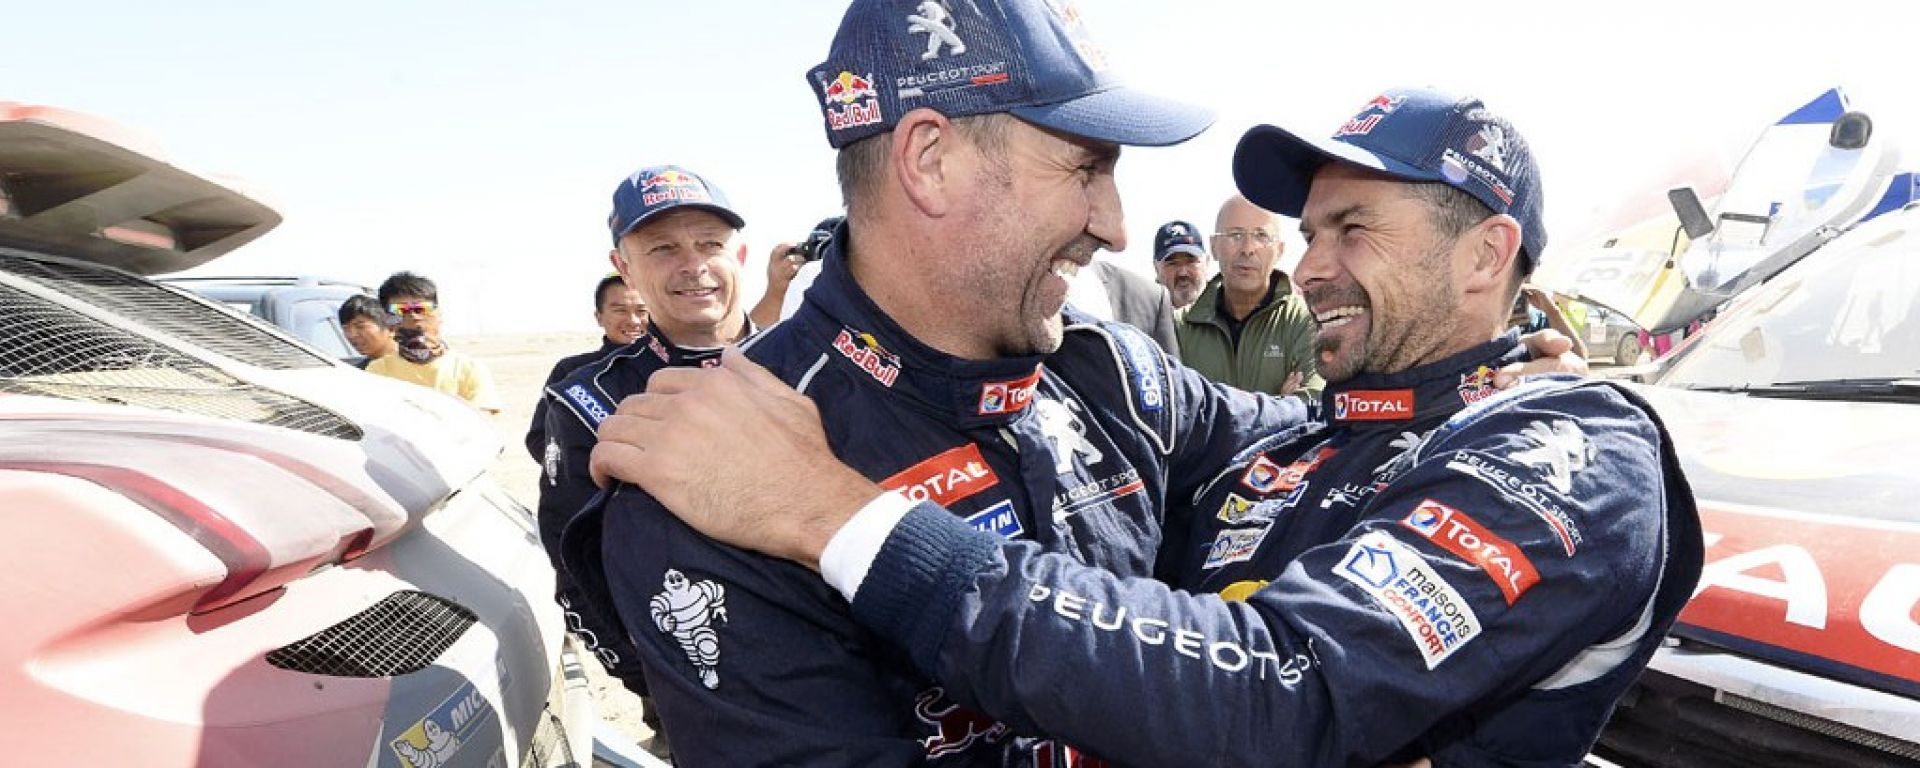 Peterhansel e Despres con le loro Peugeot 2008 DKR16 al Silk Way Rally 2016